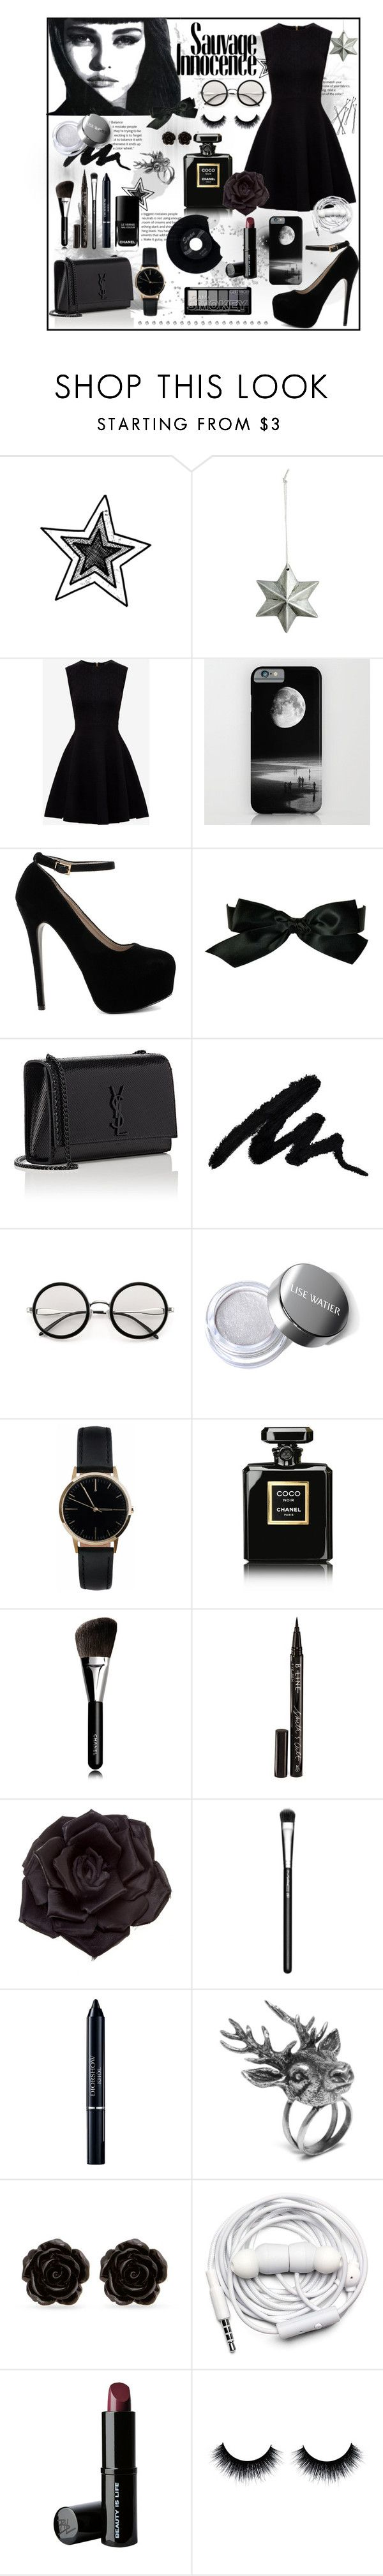 """Miss Innocente"" by lajoiedesarah on Polyvore featuring mode, Ted Baker, Chanel, Yves Saint Laurent, Freedom To Exist, CHESTERFIELD, Smith & Cult, Johnny Loves Rosie, MAC Cosmetics et Christian Dior"